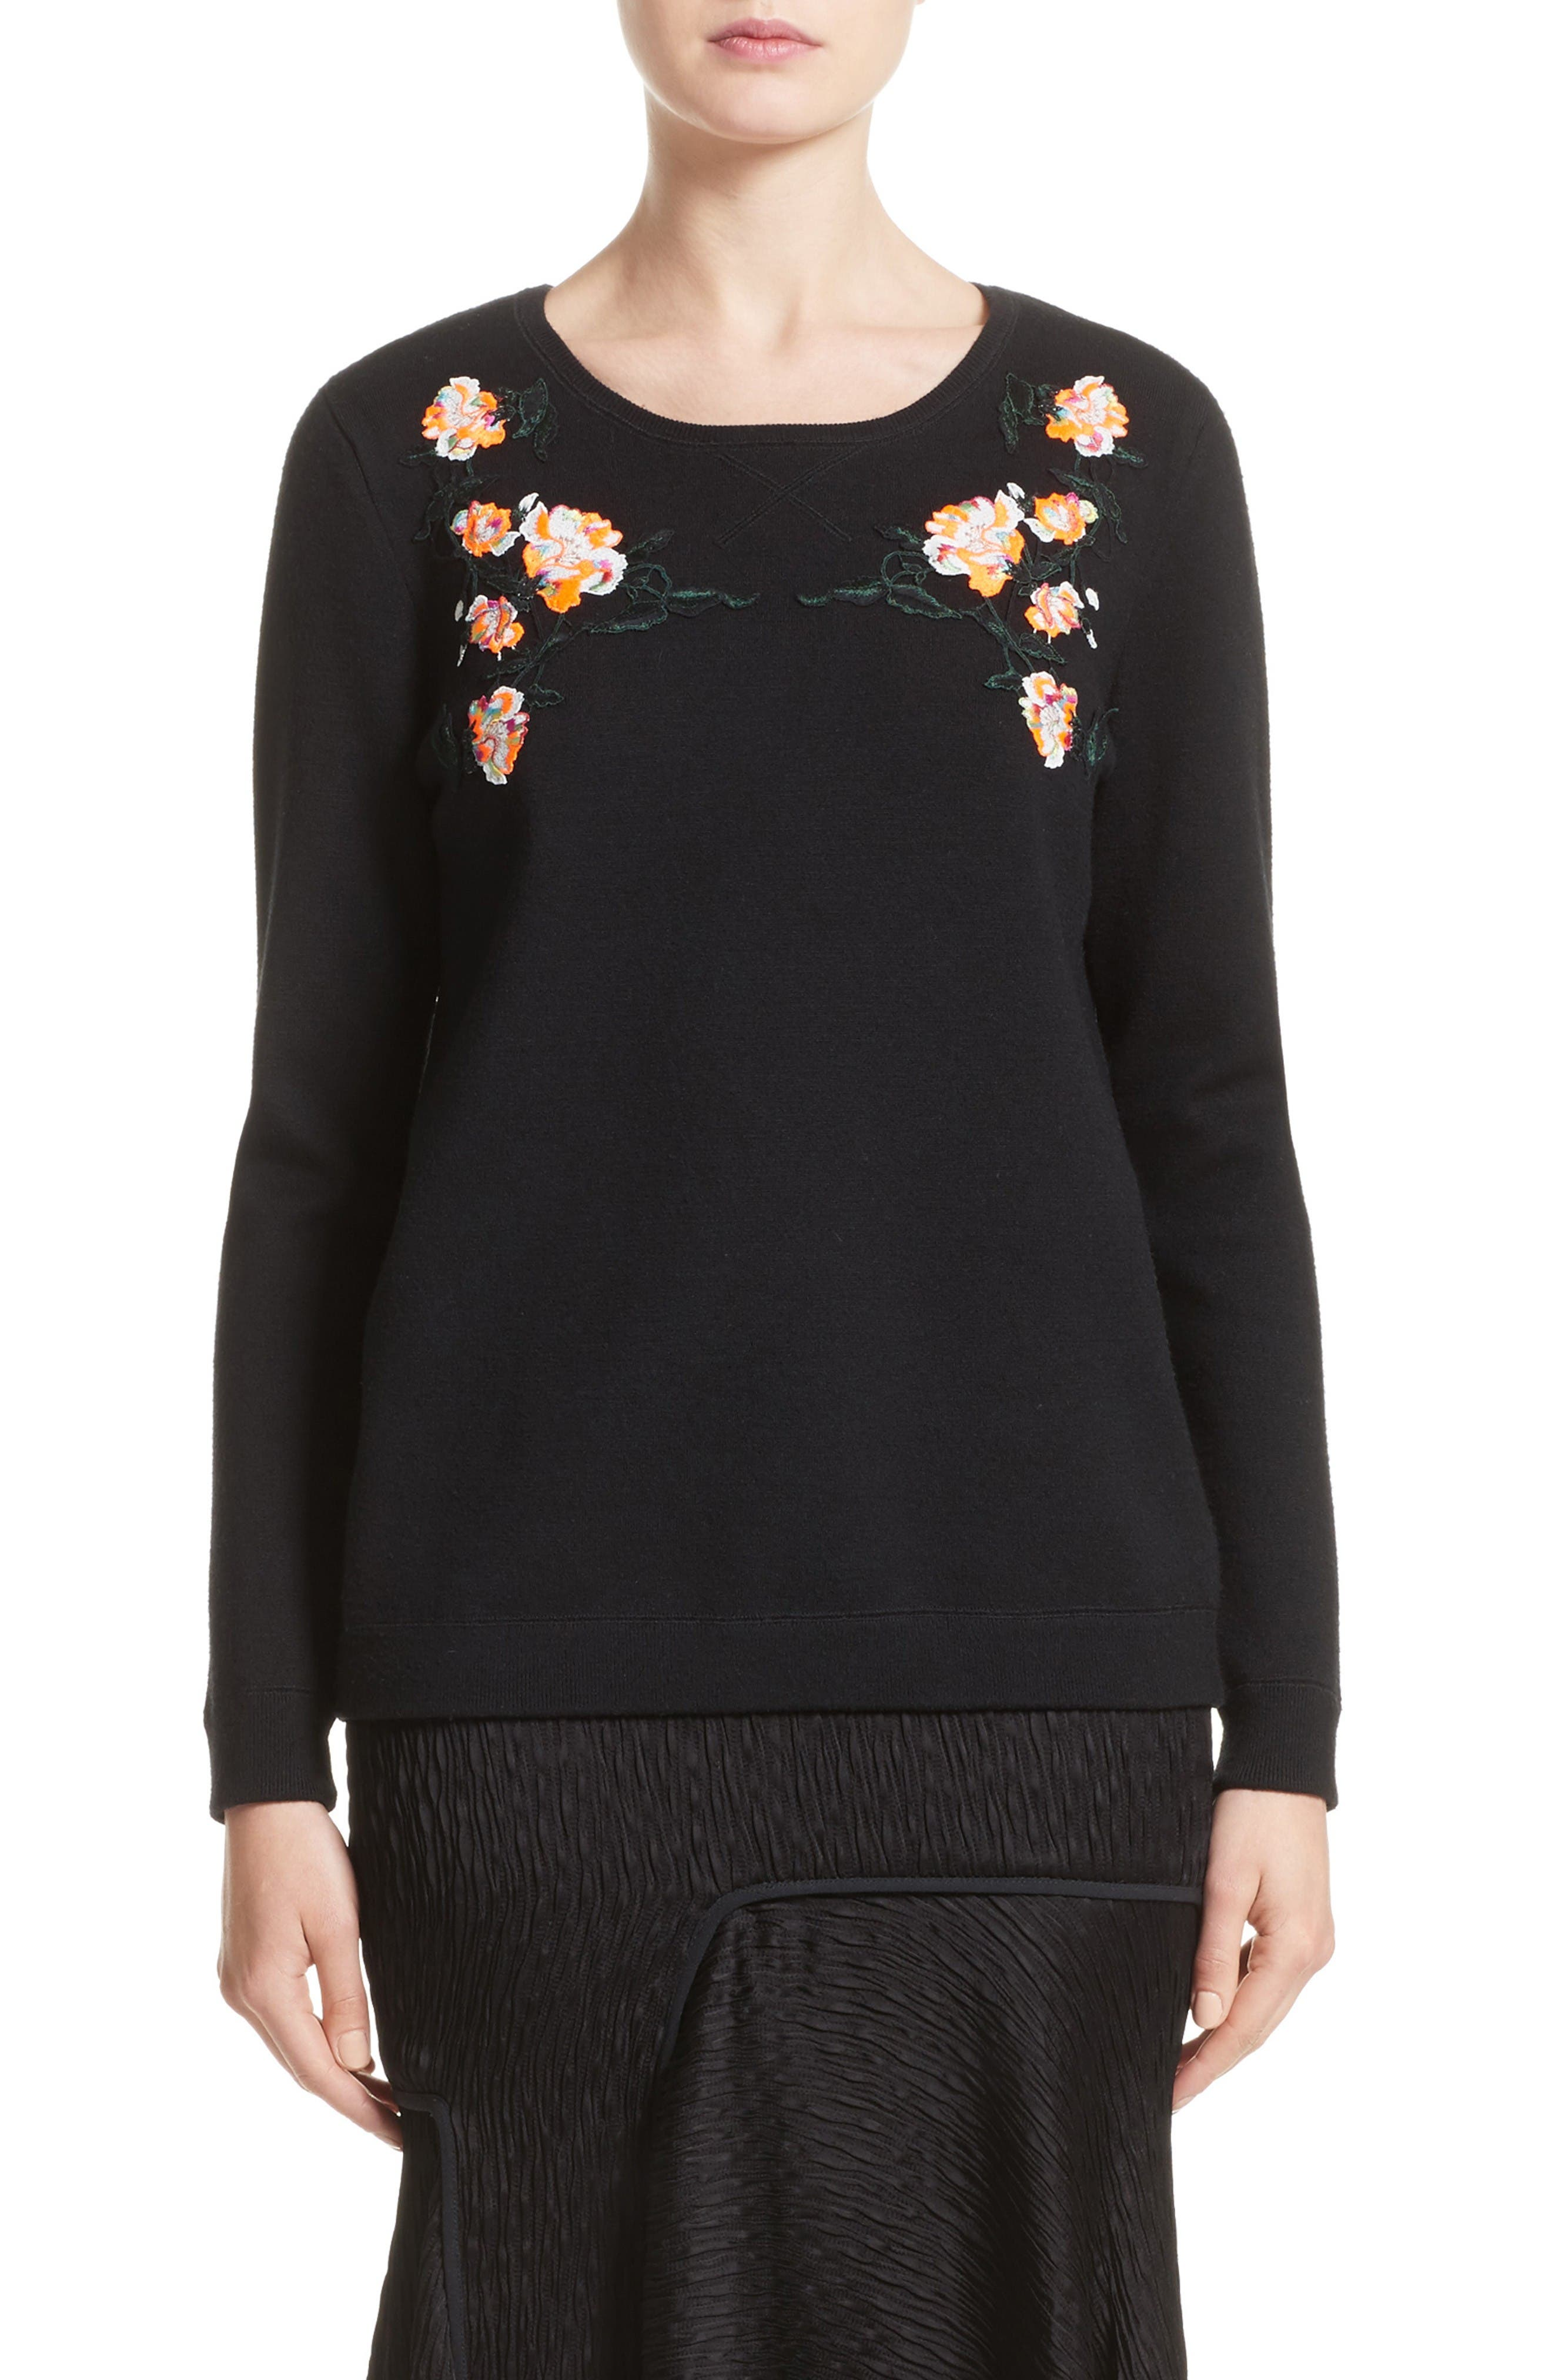 Floral Embroidered Merino Wool Blend Sweater,                             Main thumbnail 1, color,                             Black